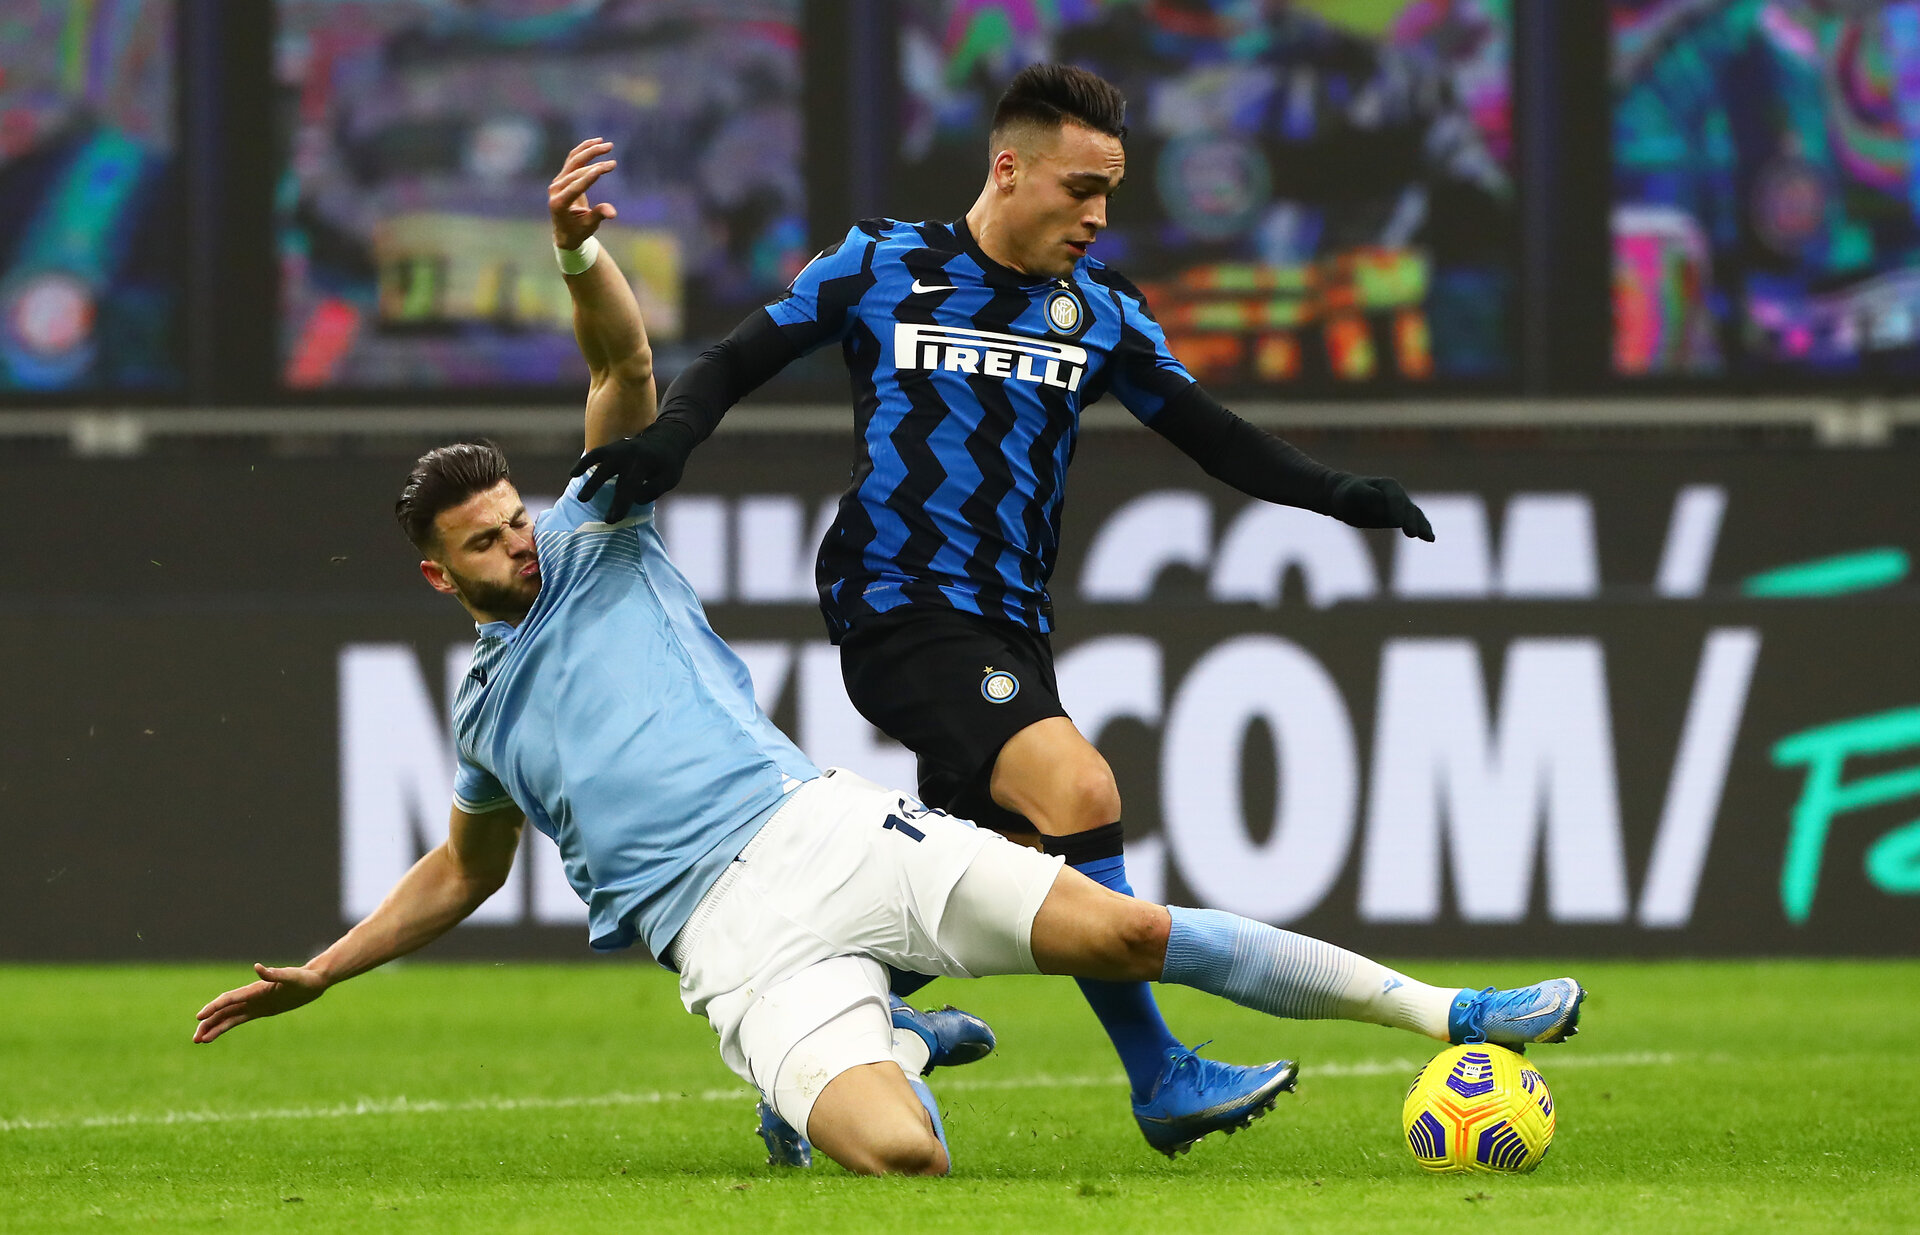 MILAN, ITALY - FEBRUARY 14: Lautaro Martinez of FC Internazionale is tackled by Wesley Hoedt of S.S. Lazio during the Serie A match between FC Internazionale  and SS Lazio at Stadio Giuseppe Meazza on February 14, 2021 in Milan, Italy. Sporting stadiums around Italy remain under strict restrictions due to the Coronavirus Pandemic as Government social distancing laws prohibit fans inside venues resulting in games being played behind closed doors. (Photo by Marco Luzzani/Getty Images)